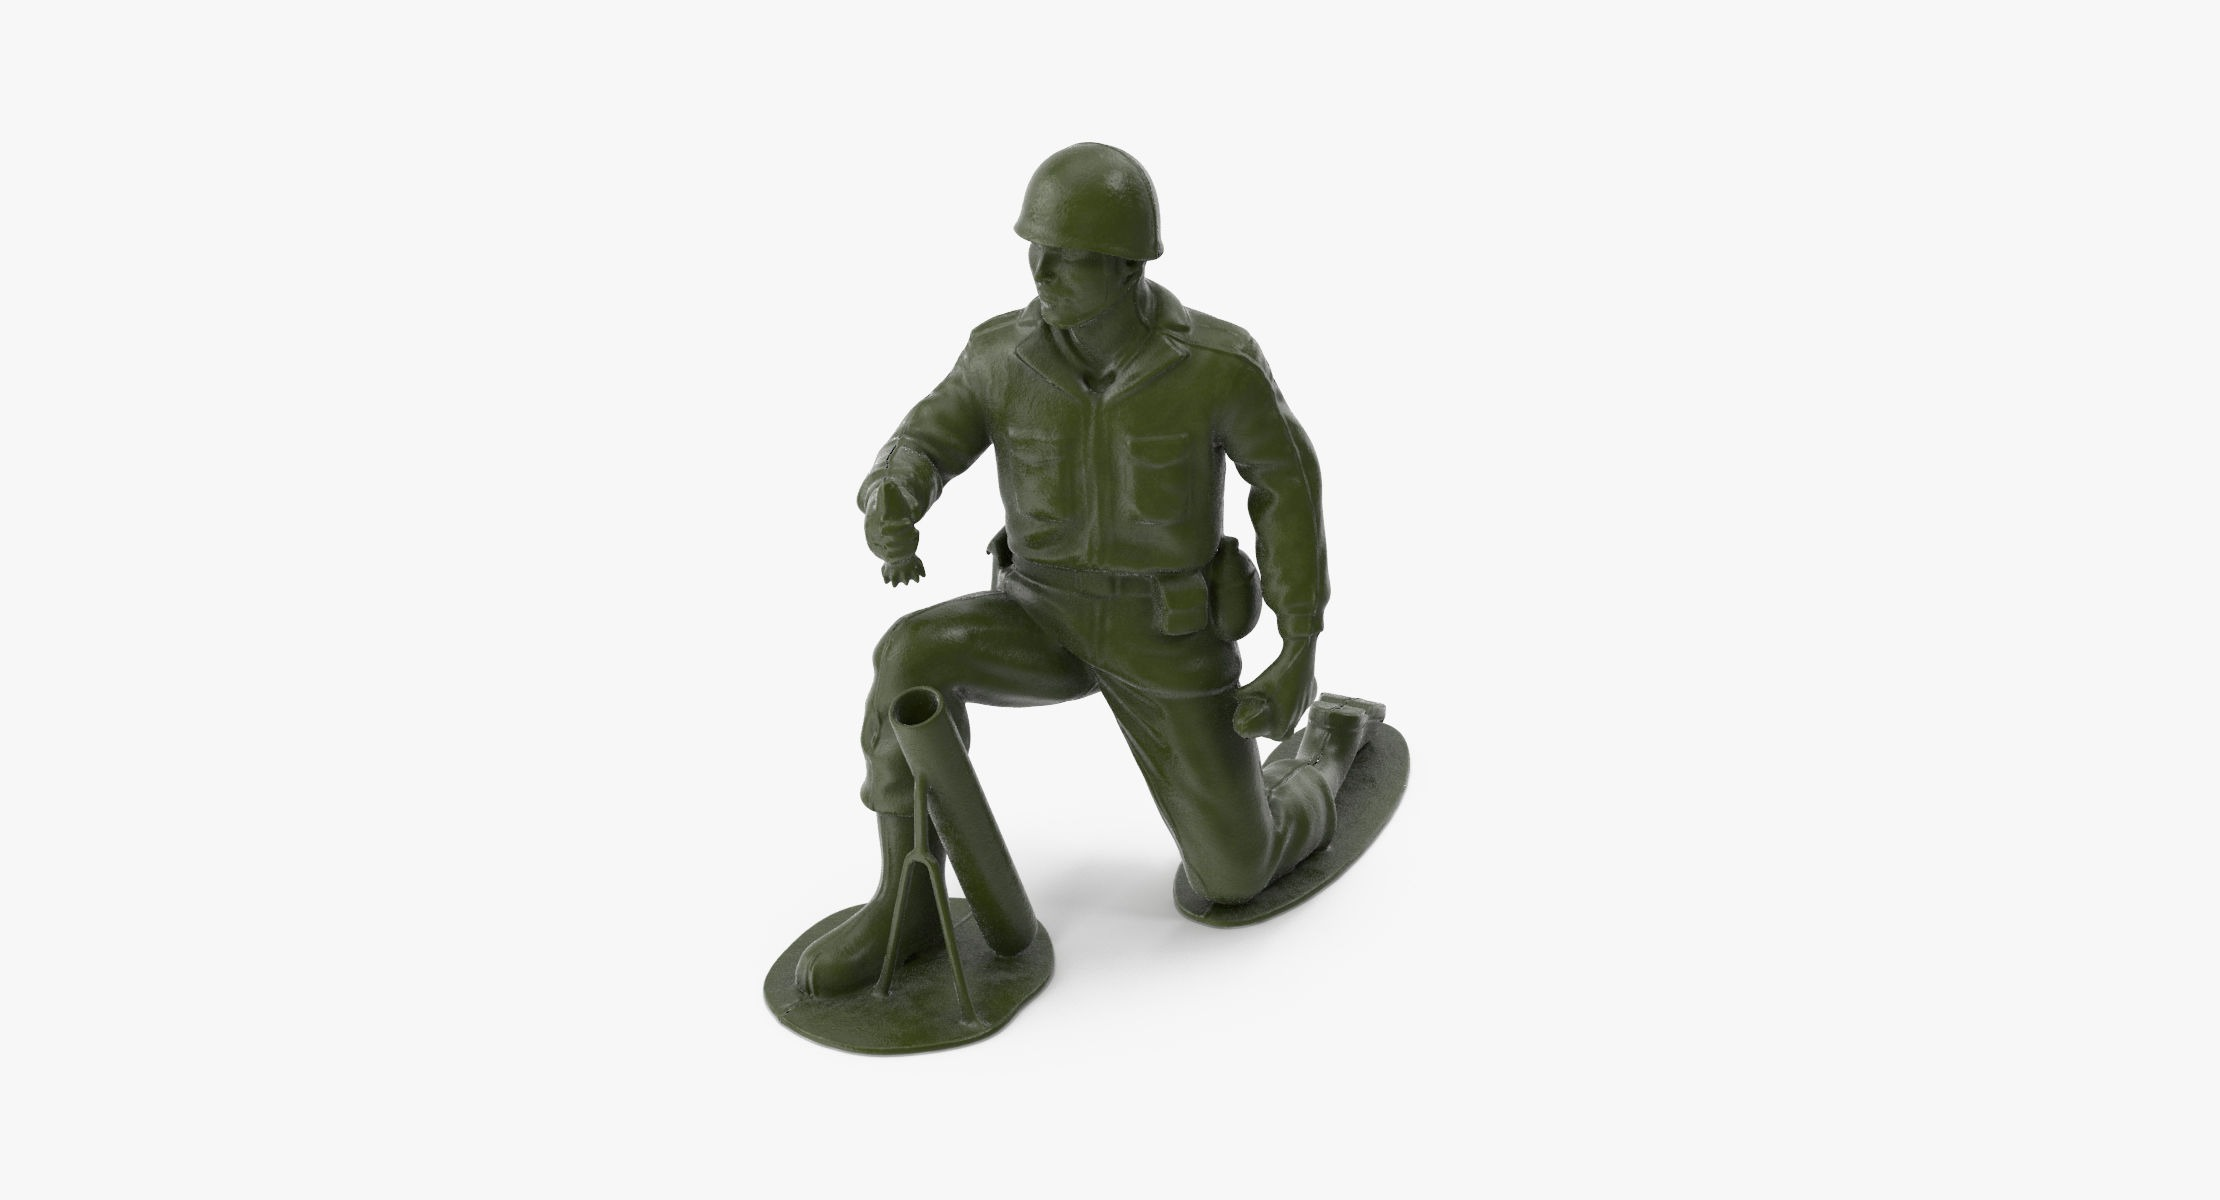 Plastic Toy Soldier 04 - Mortar - reel 1